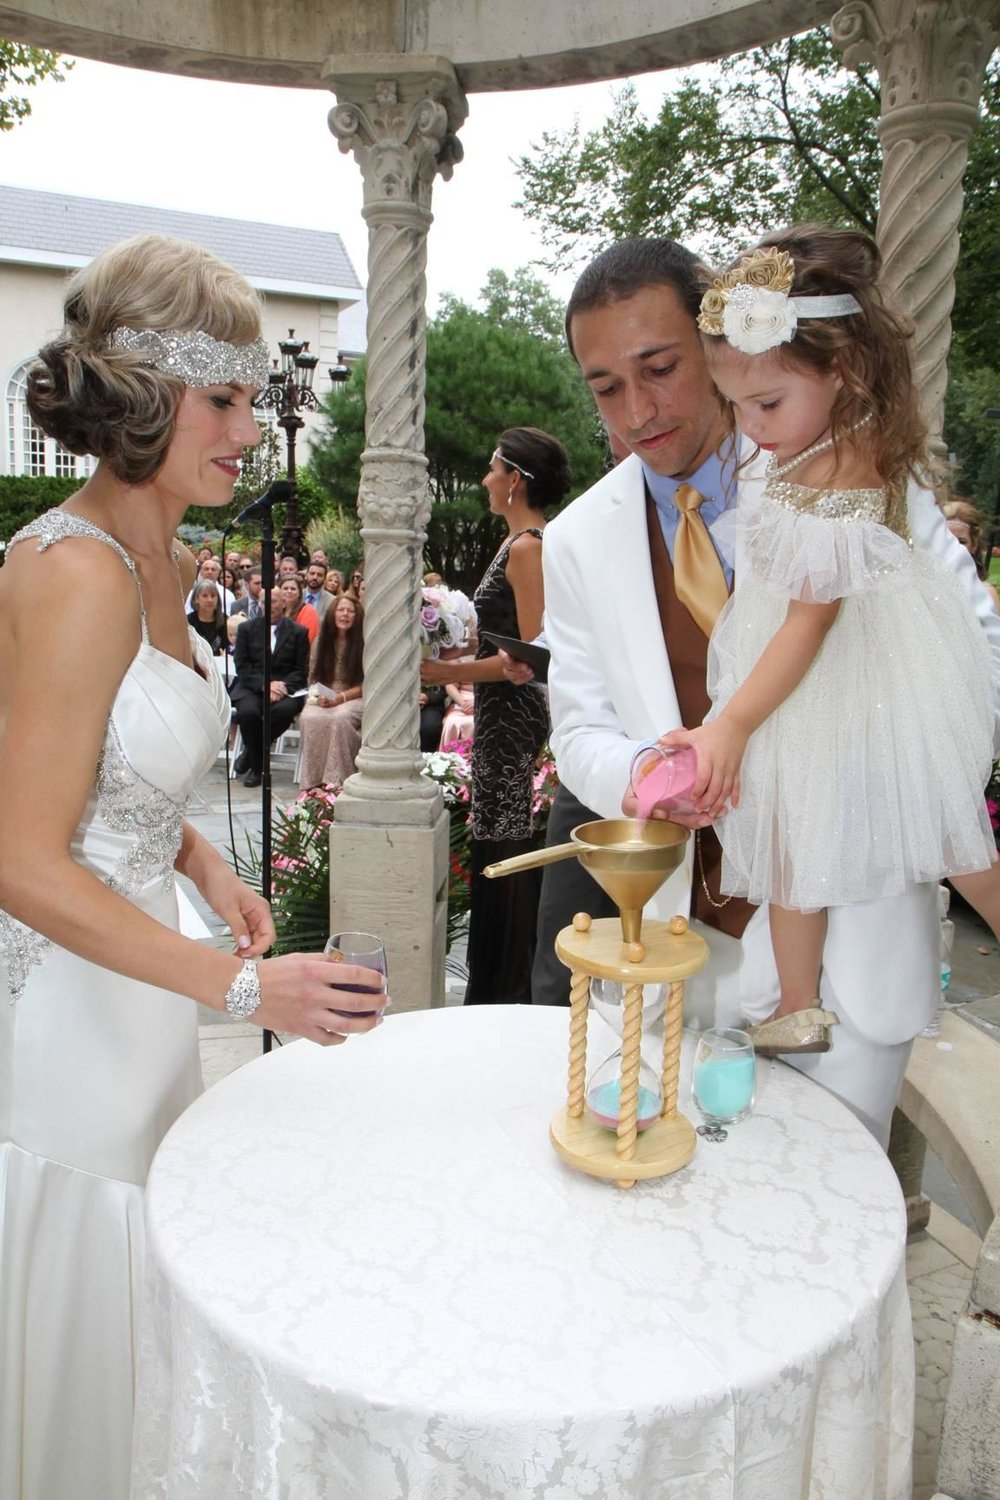 With an Heirloom Hourglass Wedding Unity Sand Ceremony you will preserve the memories of your wedding day forever - see more on www.BrendasWeddingBlog.com